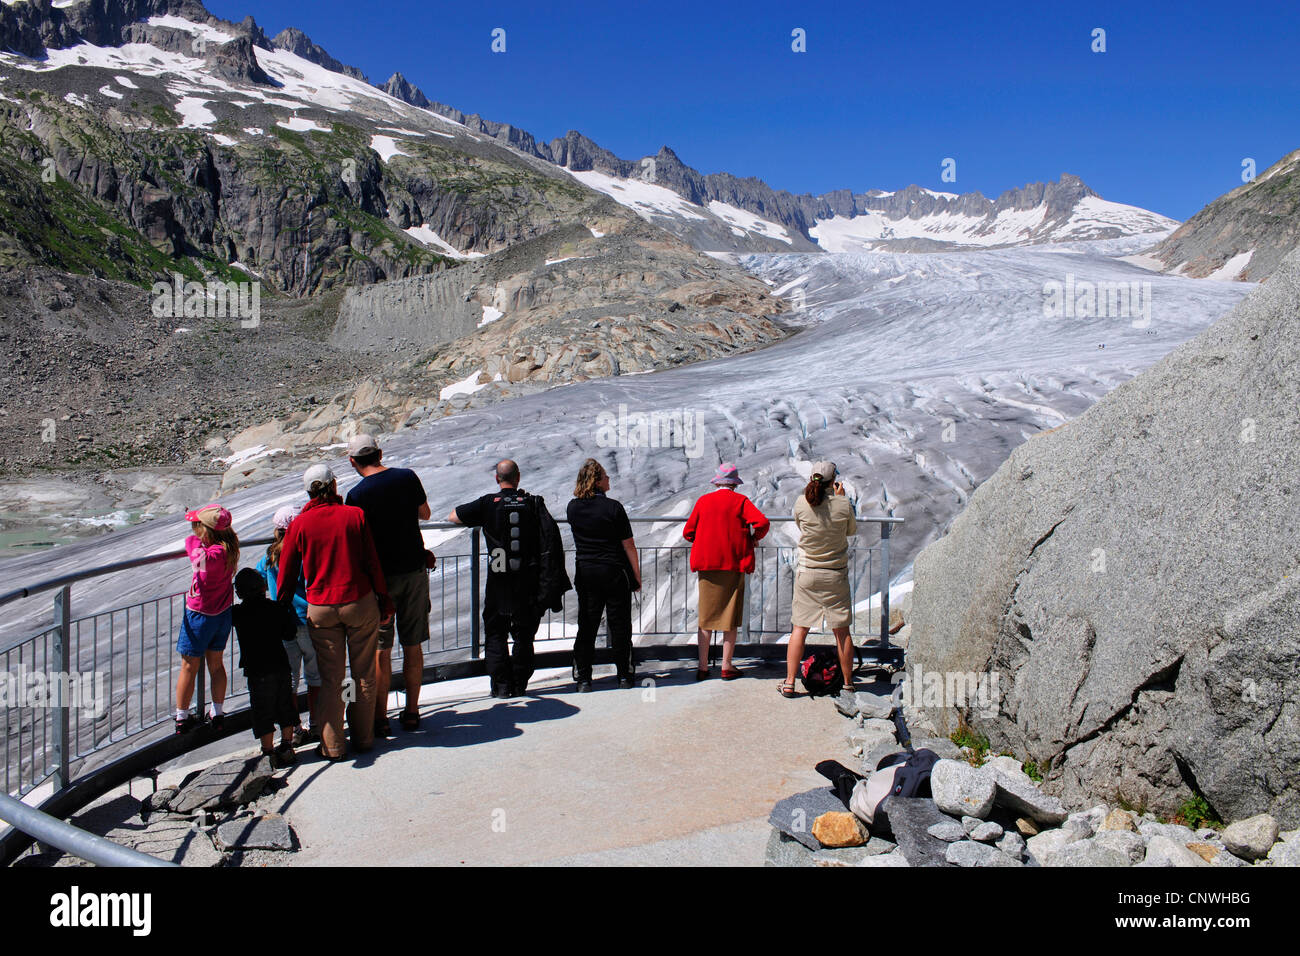 view from viewing platform with visitors at the Rhne Glacier, Switzerland, Valais - Stock Image